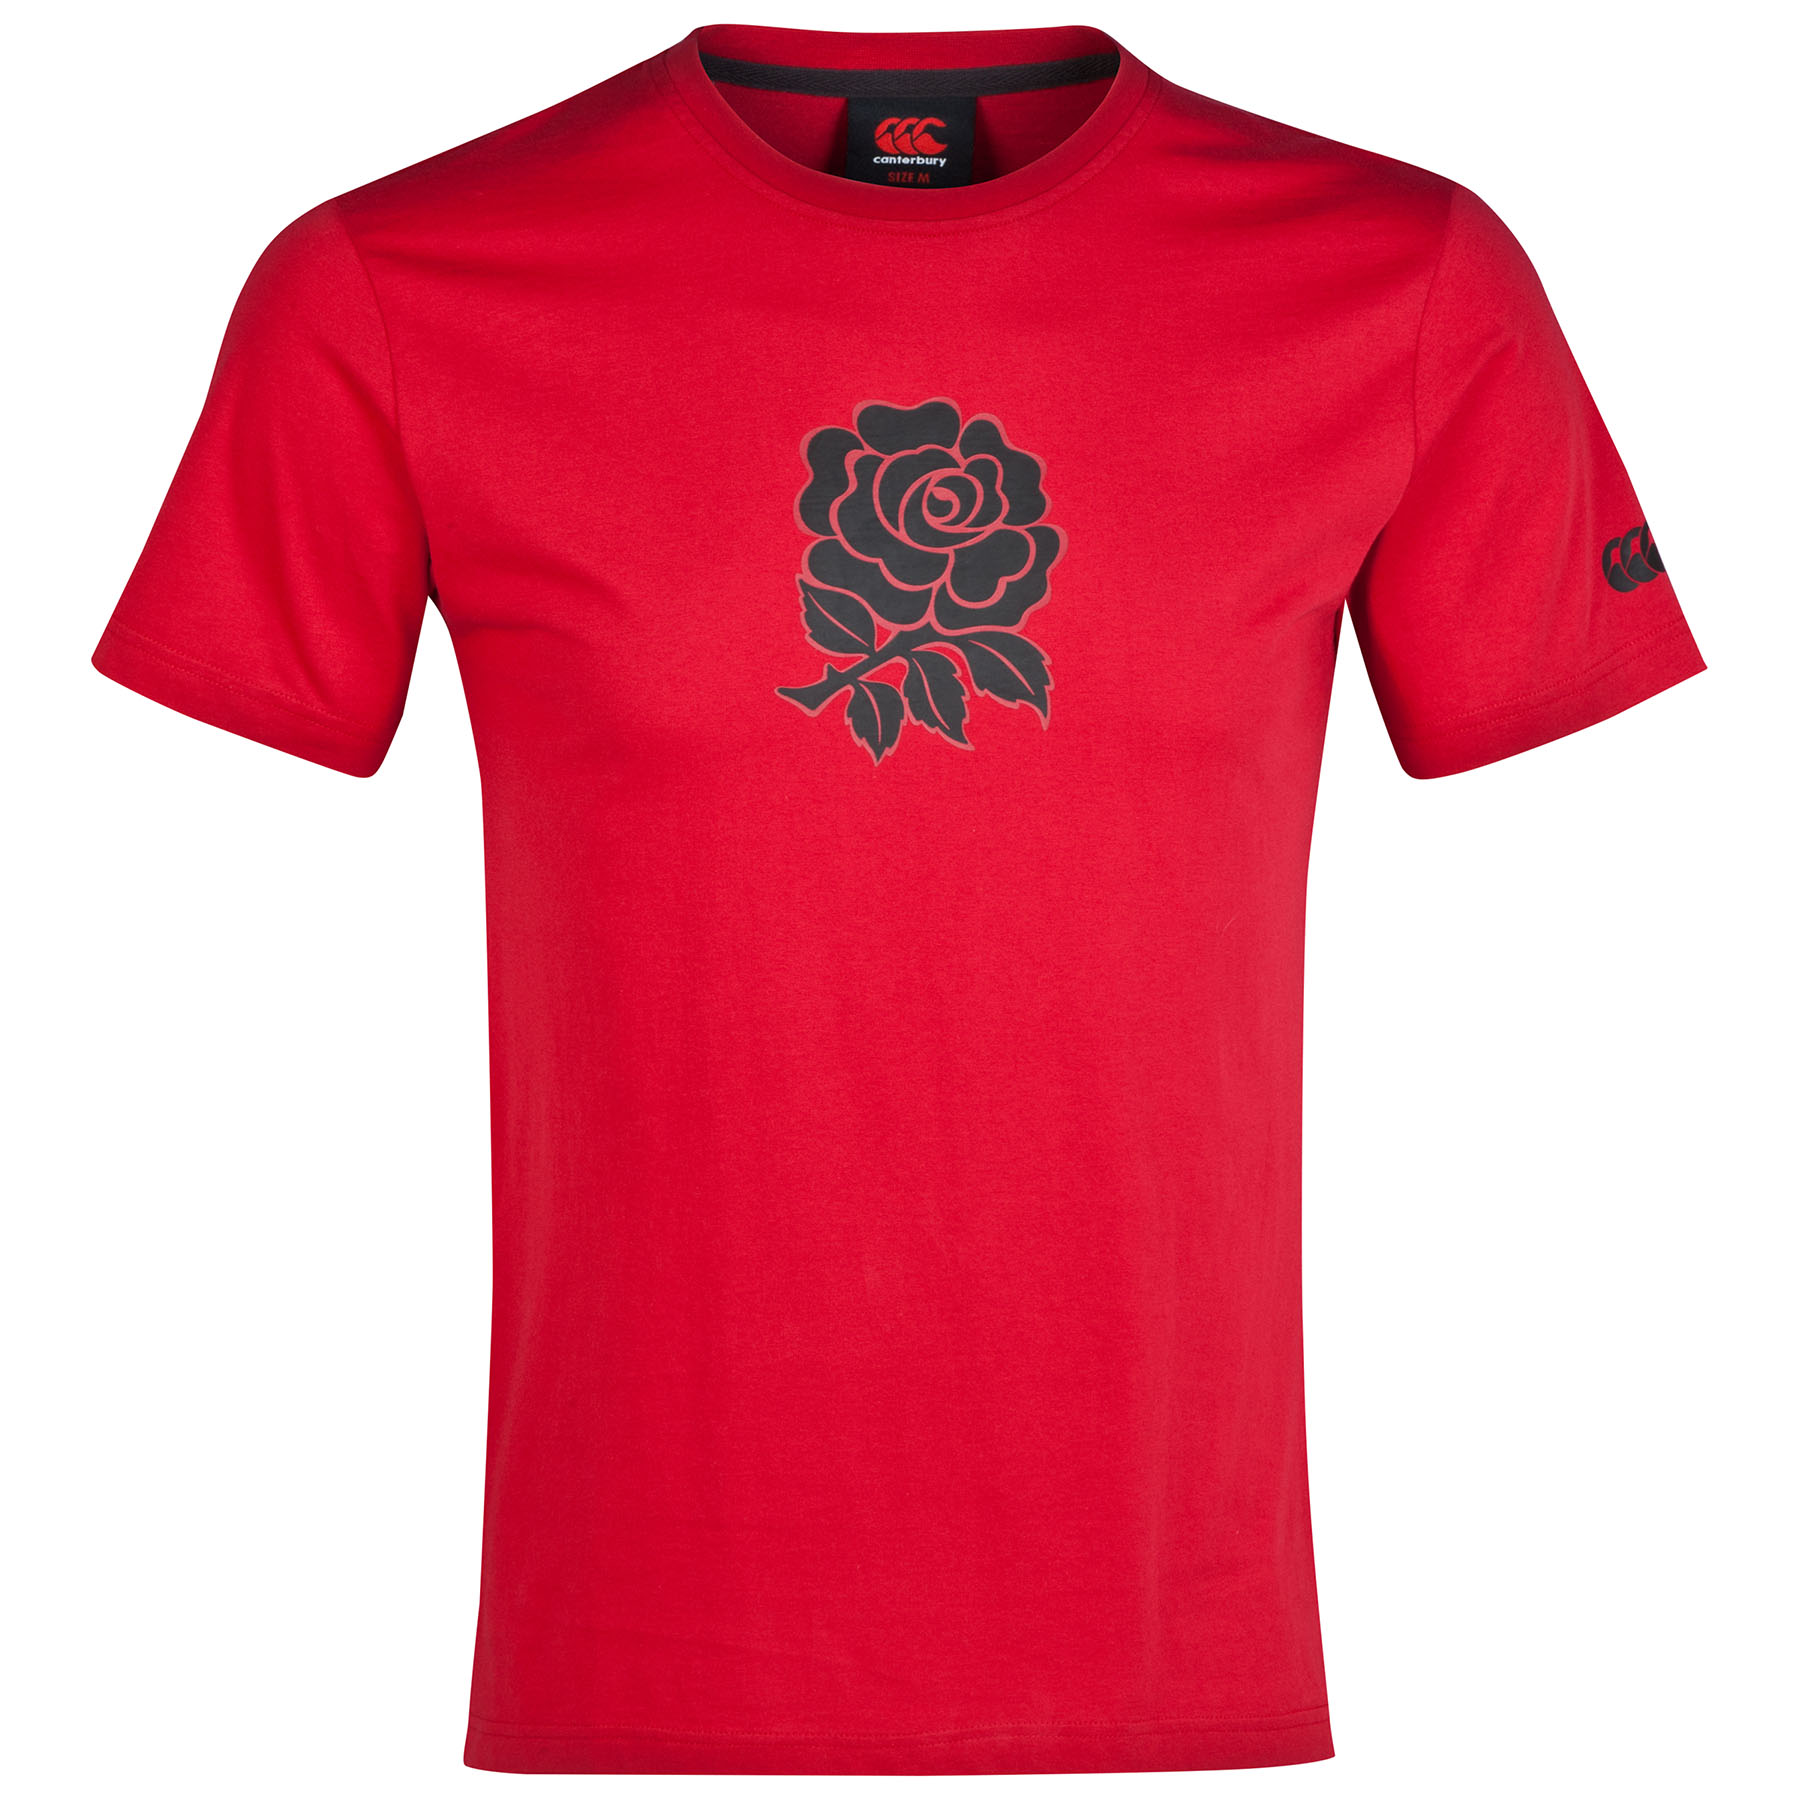 England Cotton Graphic T-Shirt Red